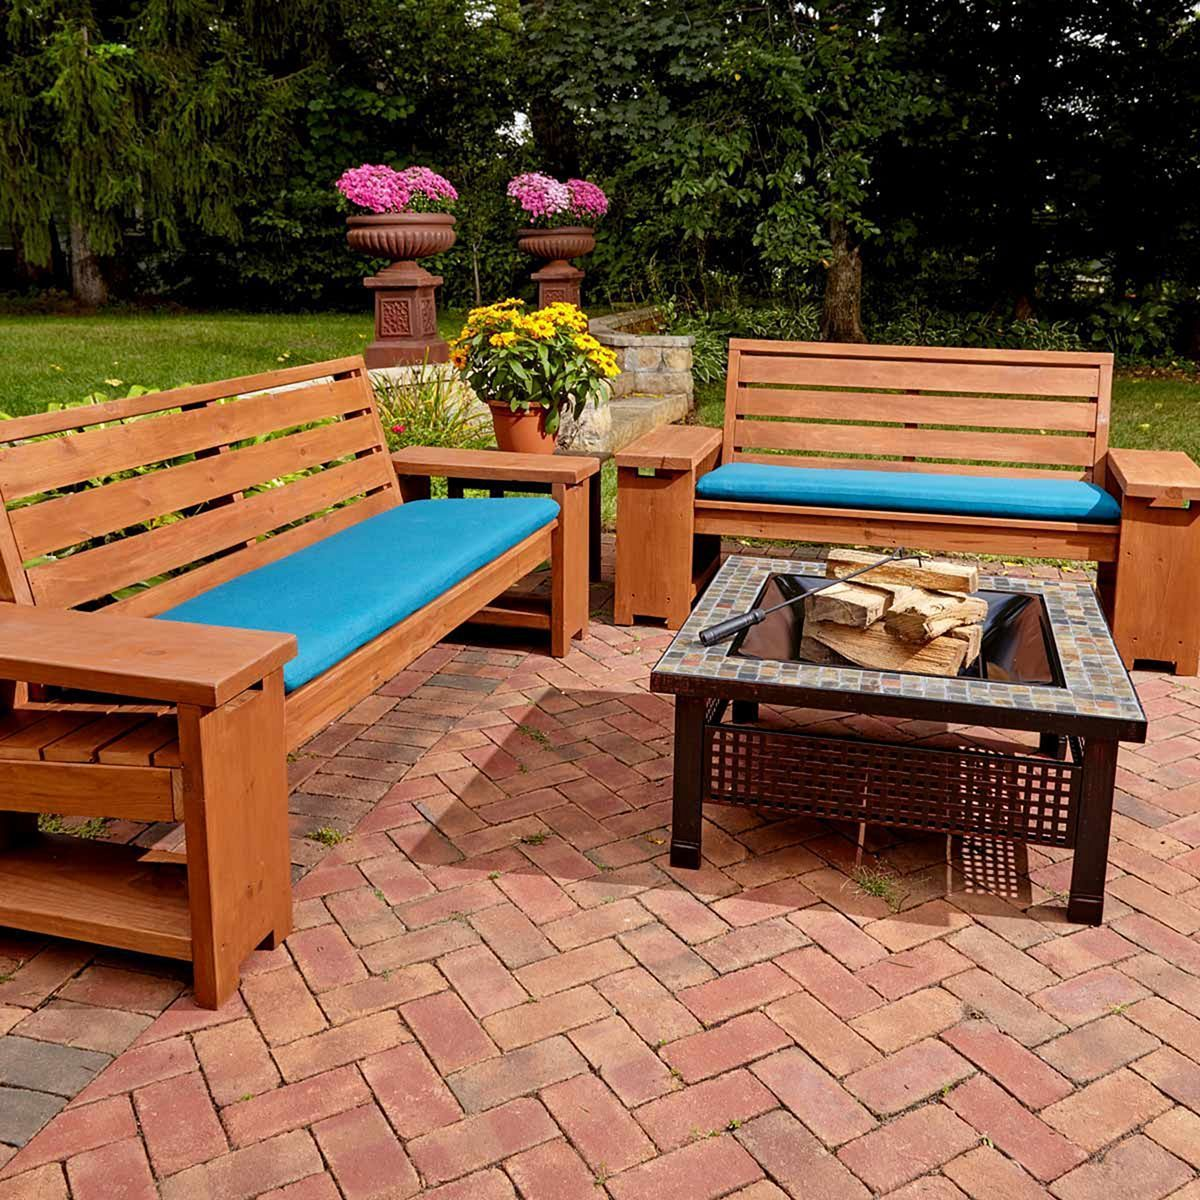 Diy Wood Patio Furniture 9 Wooden Bench Plans Outdoor